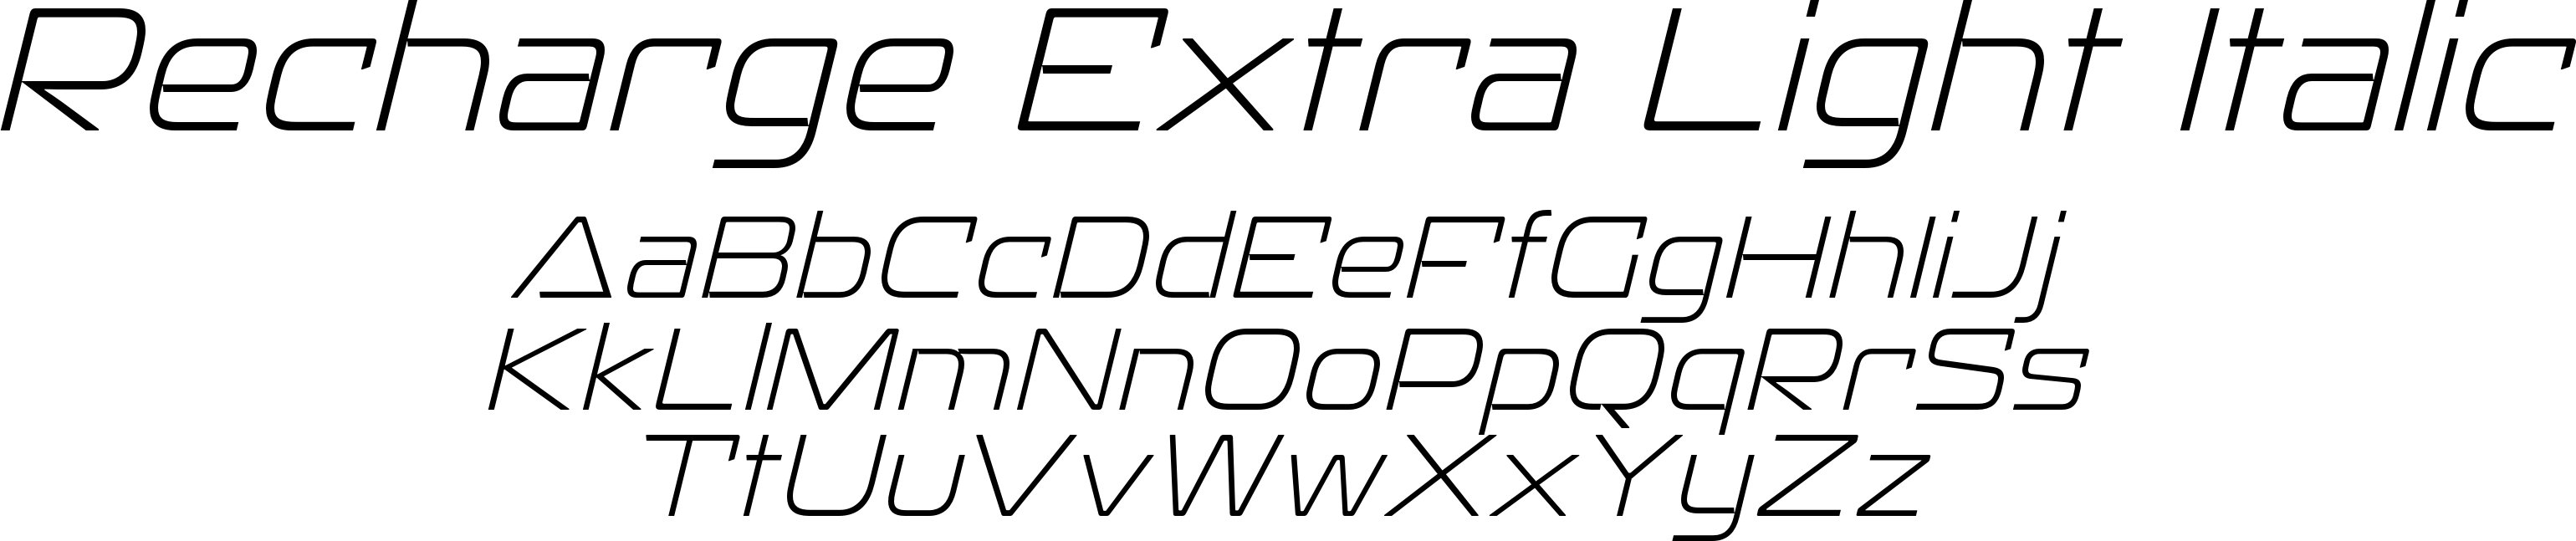 Recharge Extra Light Italic